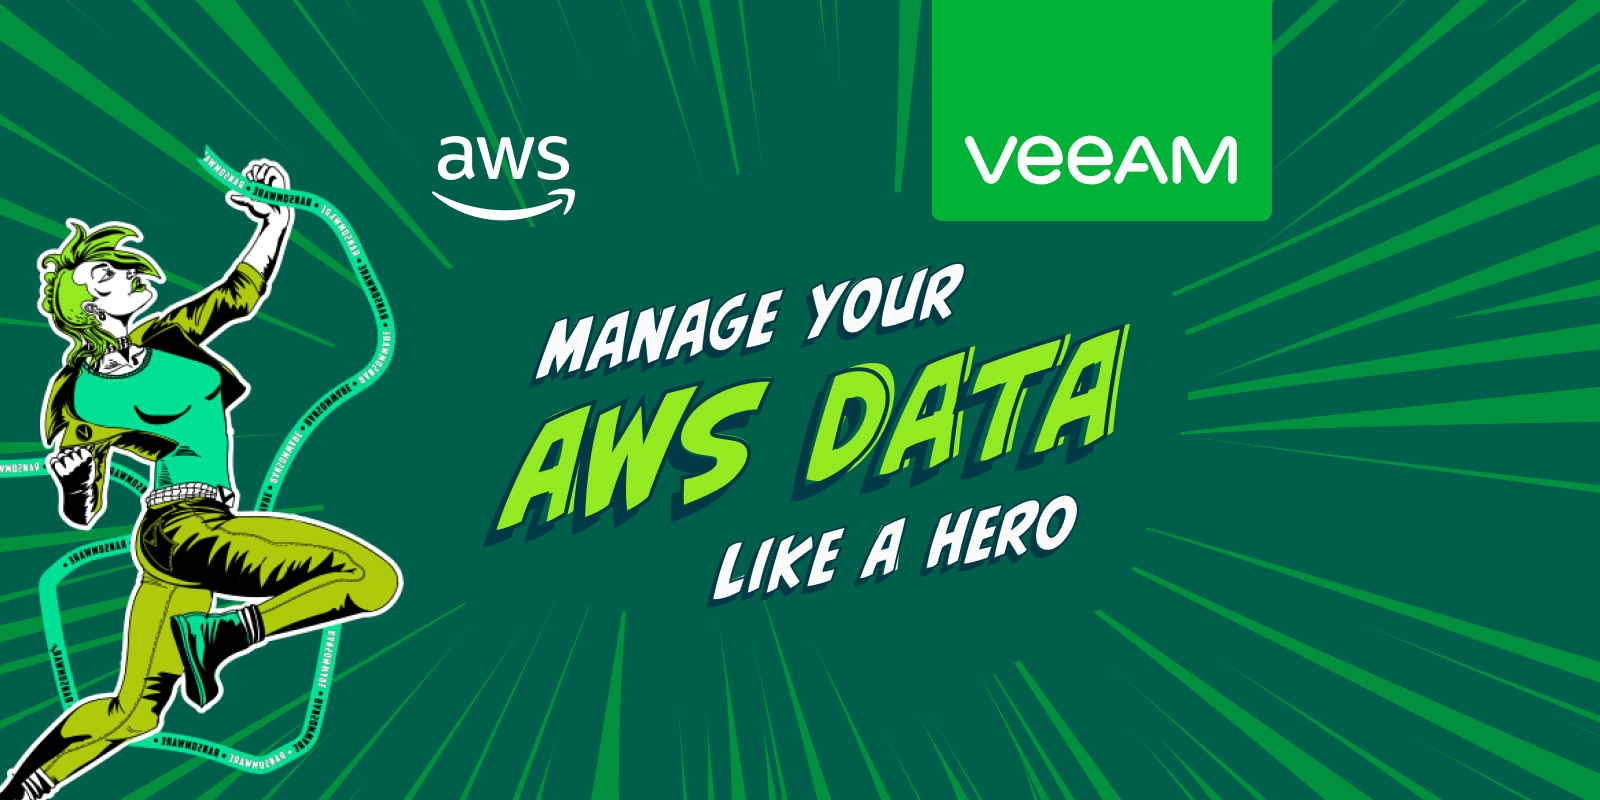 Manage Your AWS Data Like A Hero